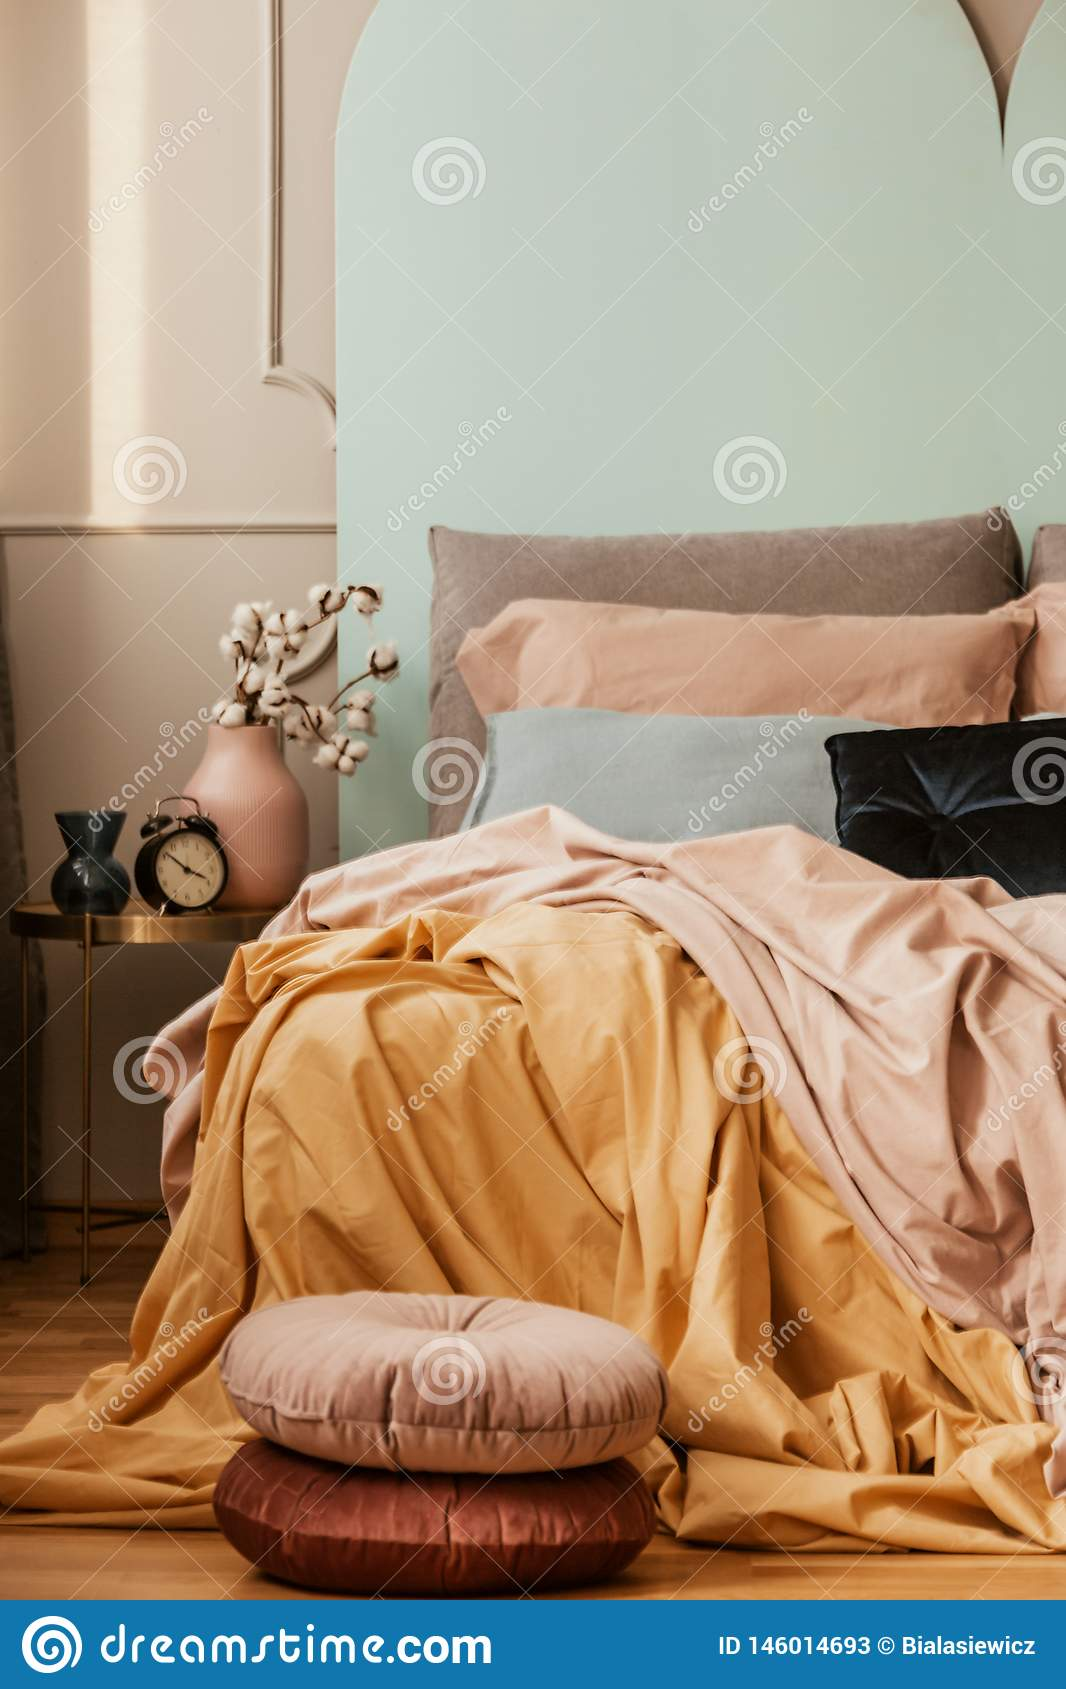 Elegant Pastel Pink Blue And Yellow Bedding On King Size Bed Fashionable Bedroom Interior Stock Image Image Of Chic King 146014693